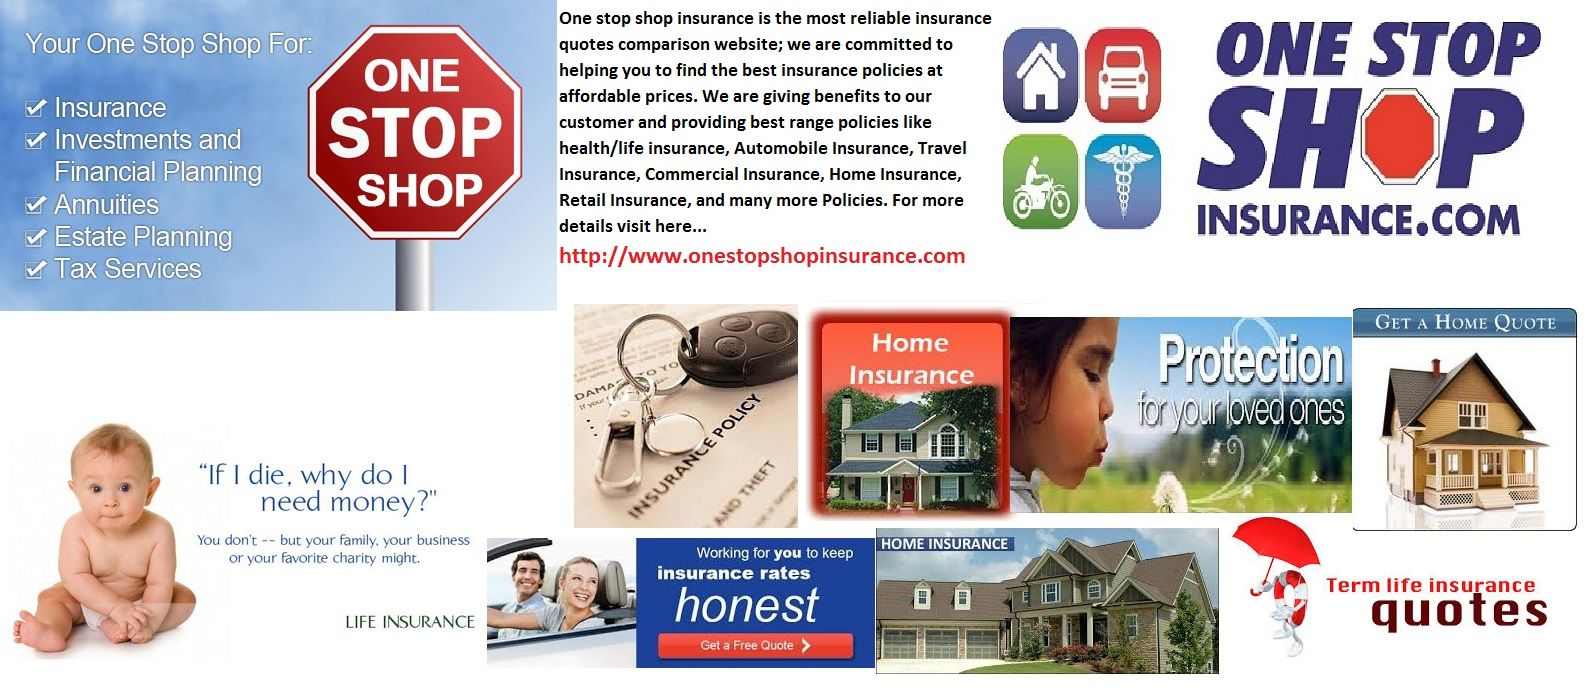 One Stop Shop Insurance Is The Most Reliable Insurance Quotes